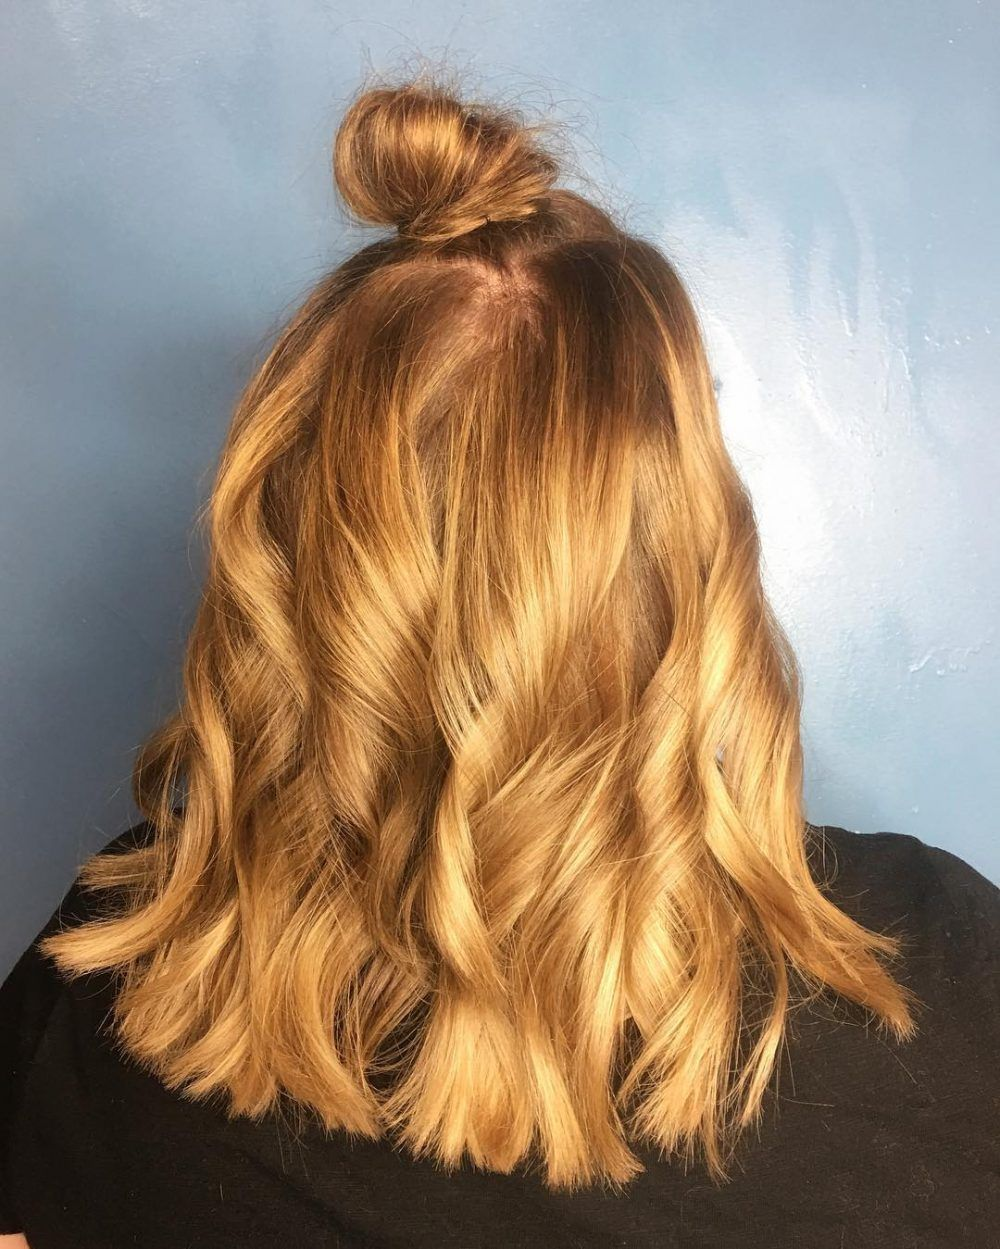 32 Casual Hairstyles That Are Quick, Chic and Easy for ...